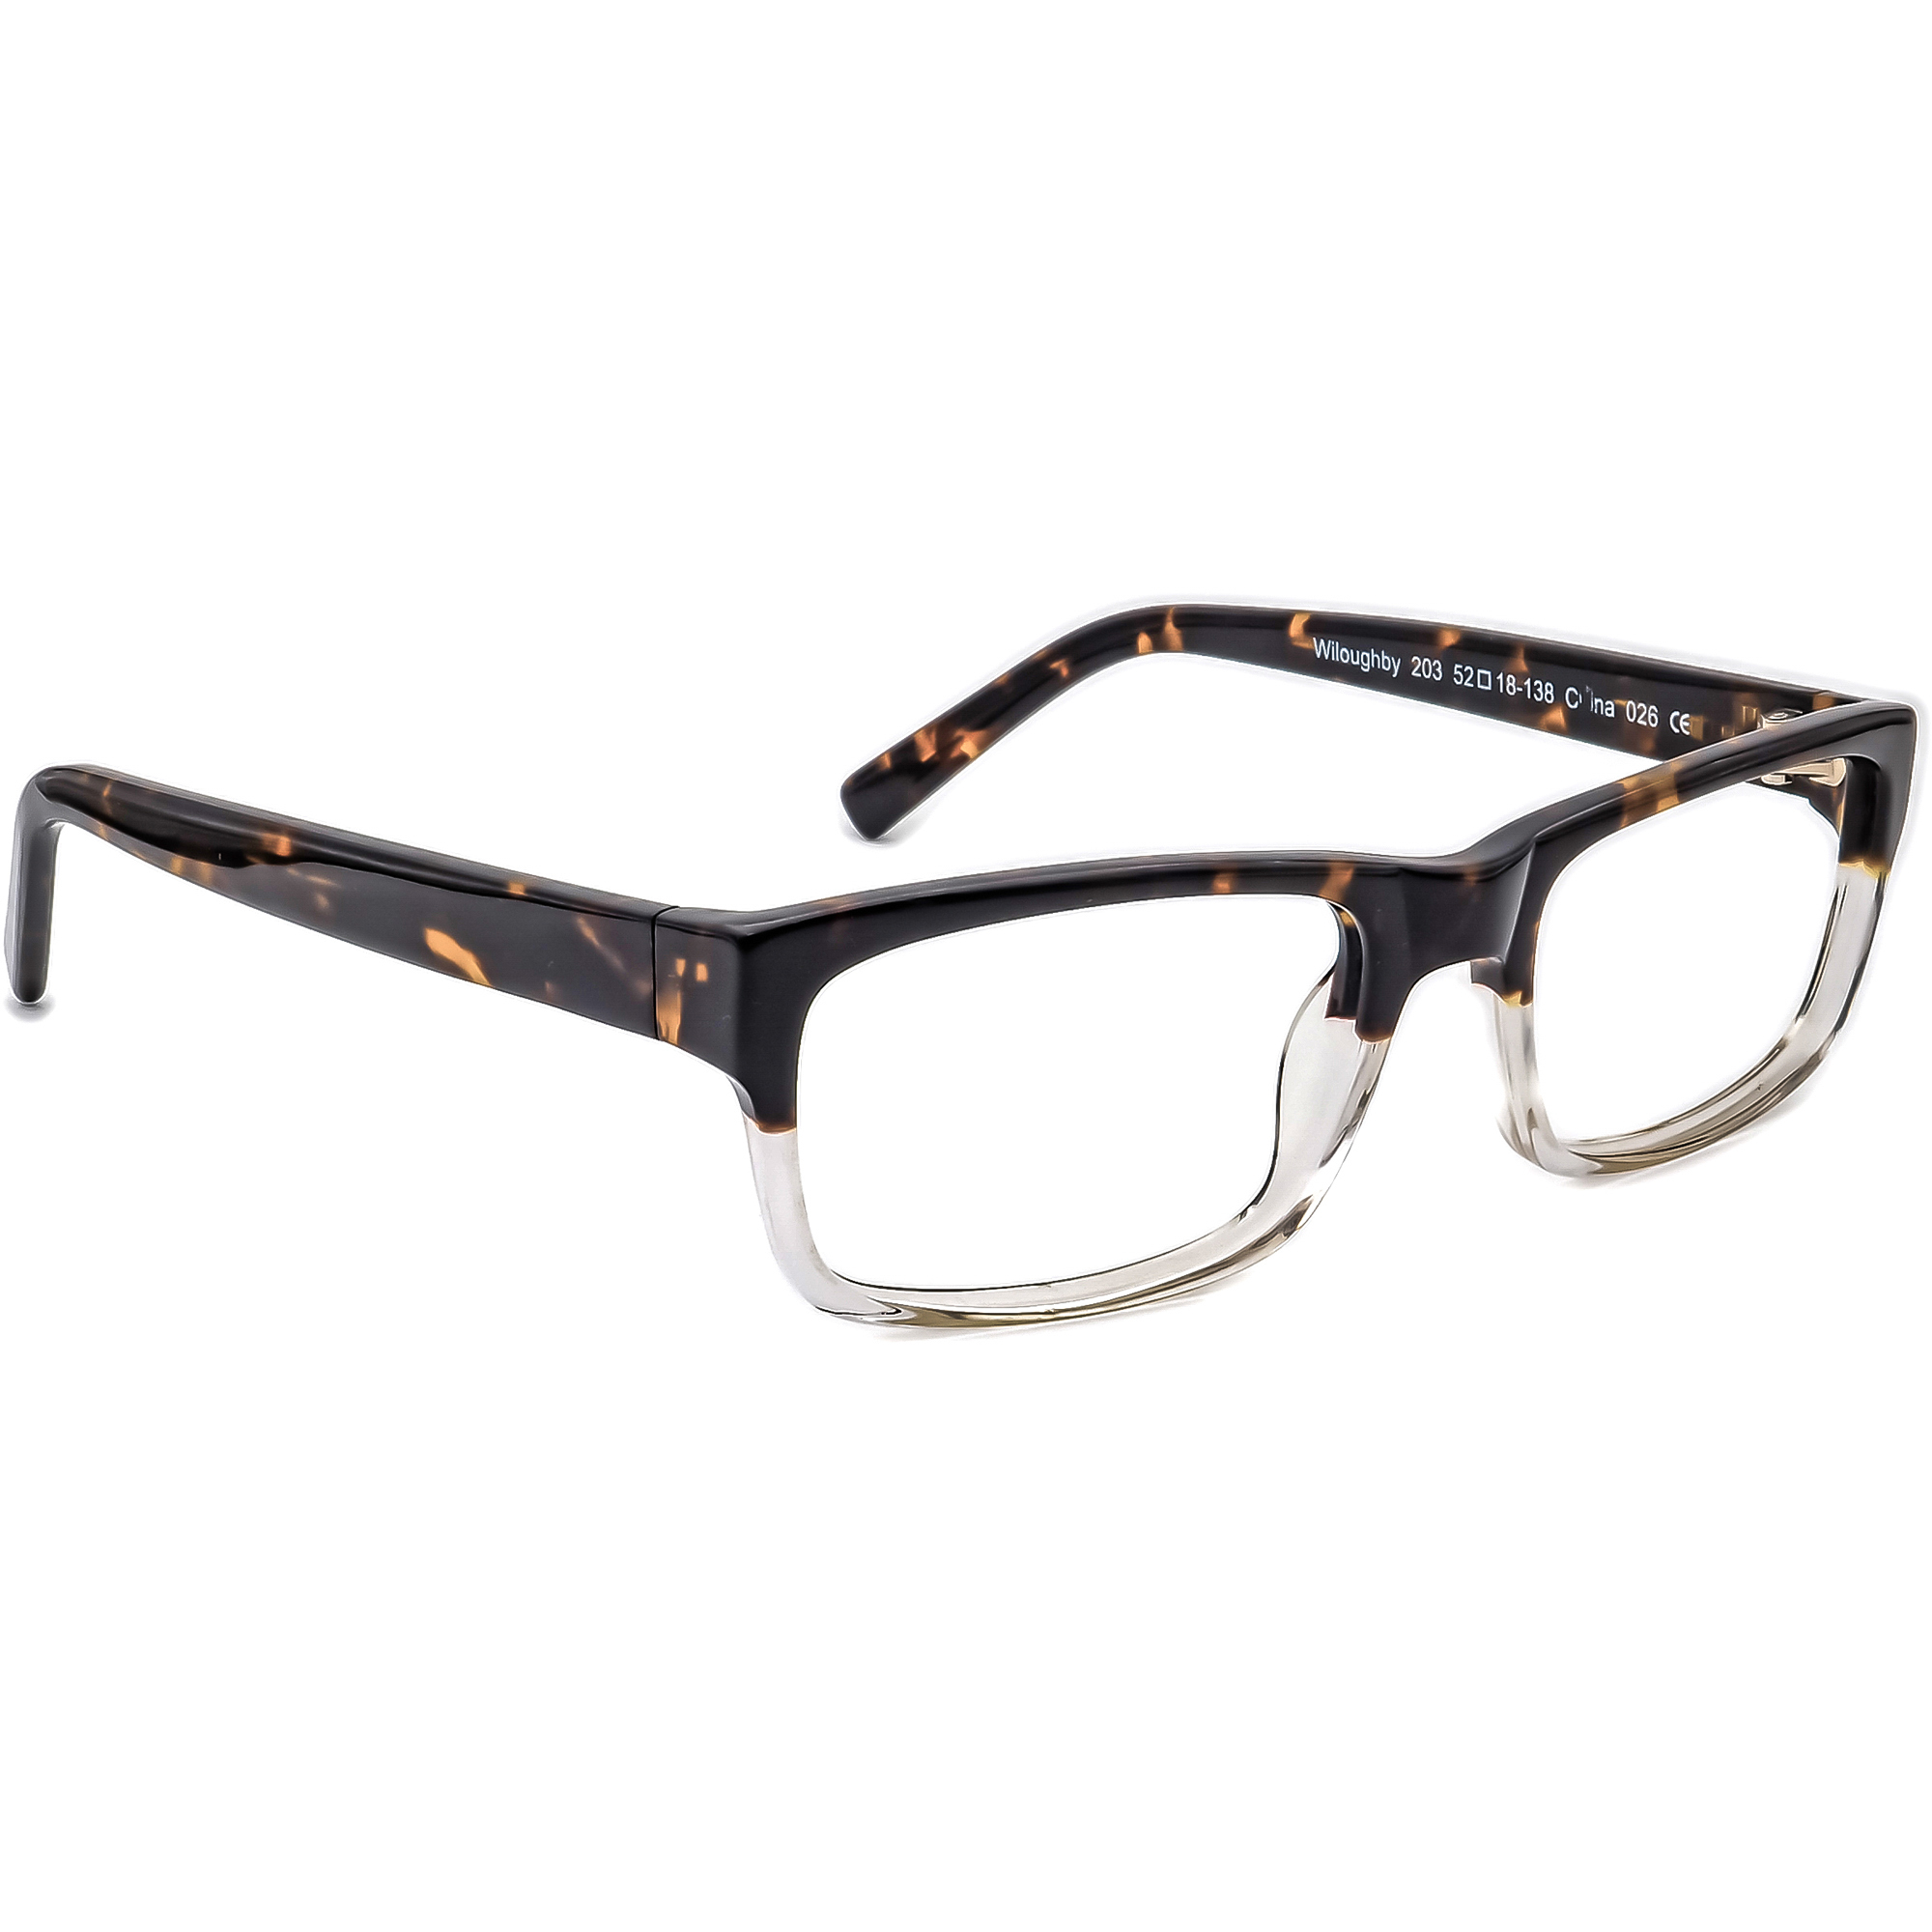 Warby Parker Wiloughby 203 Eyeglasses